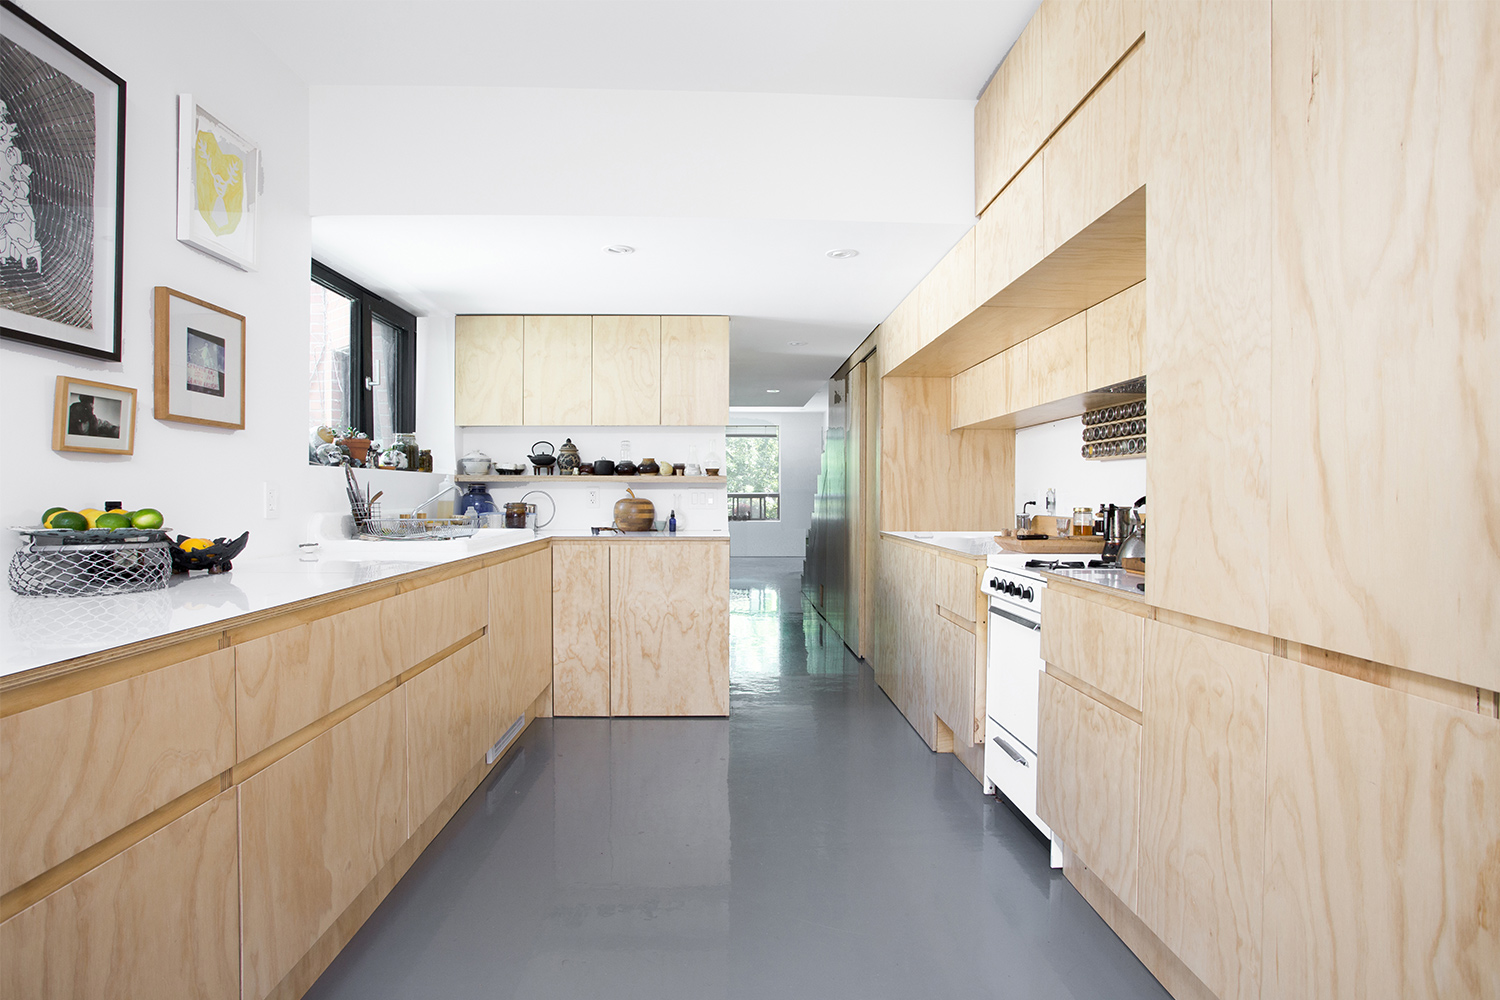 Complete renovation of a kitchen. Made-to-measure boxes made by cabinetmaker in Russian cherry plywood. Gas stove with lustered white countertop. Glossy gray epoxy floor